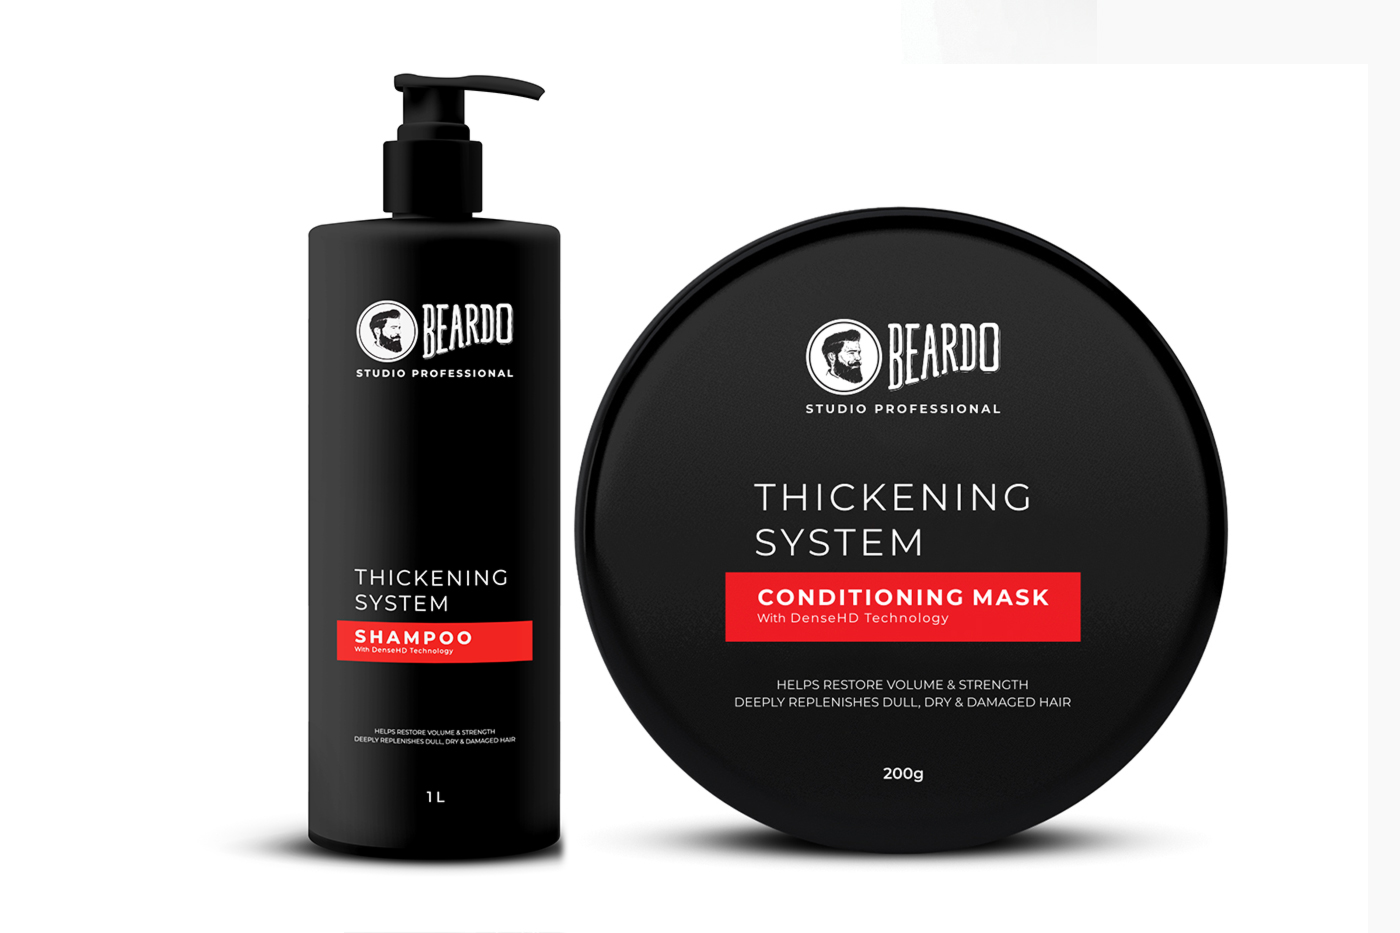 Beardo presents professional haircare products